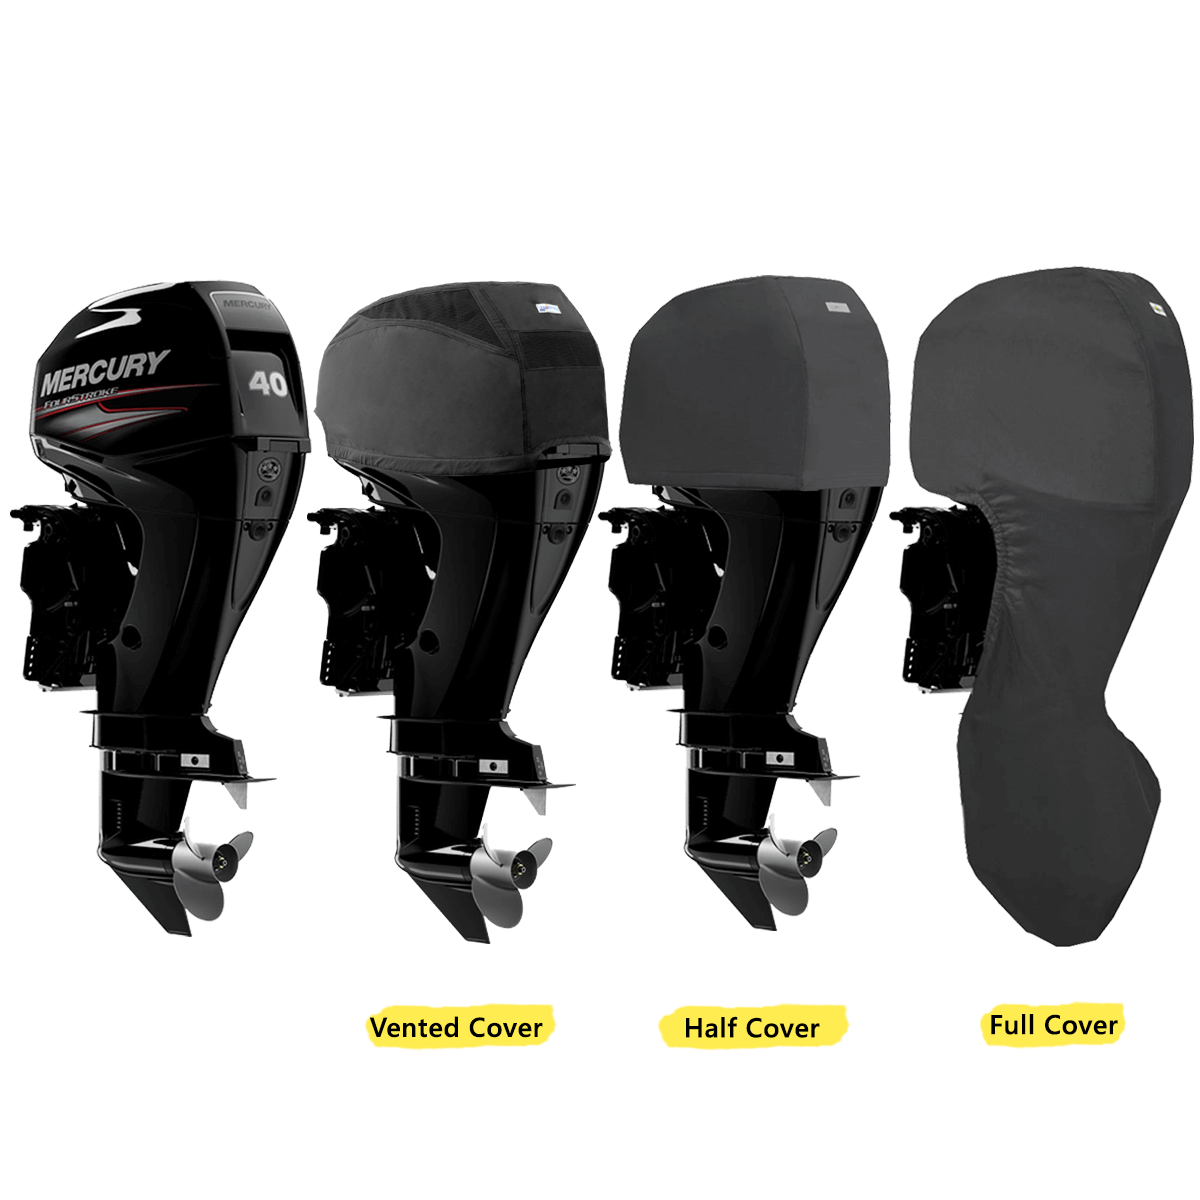 Oceansouth Covers for Mercury Outboards